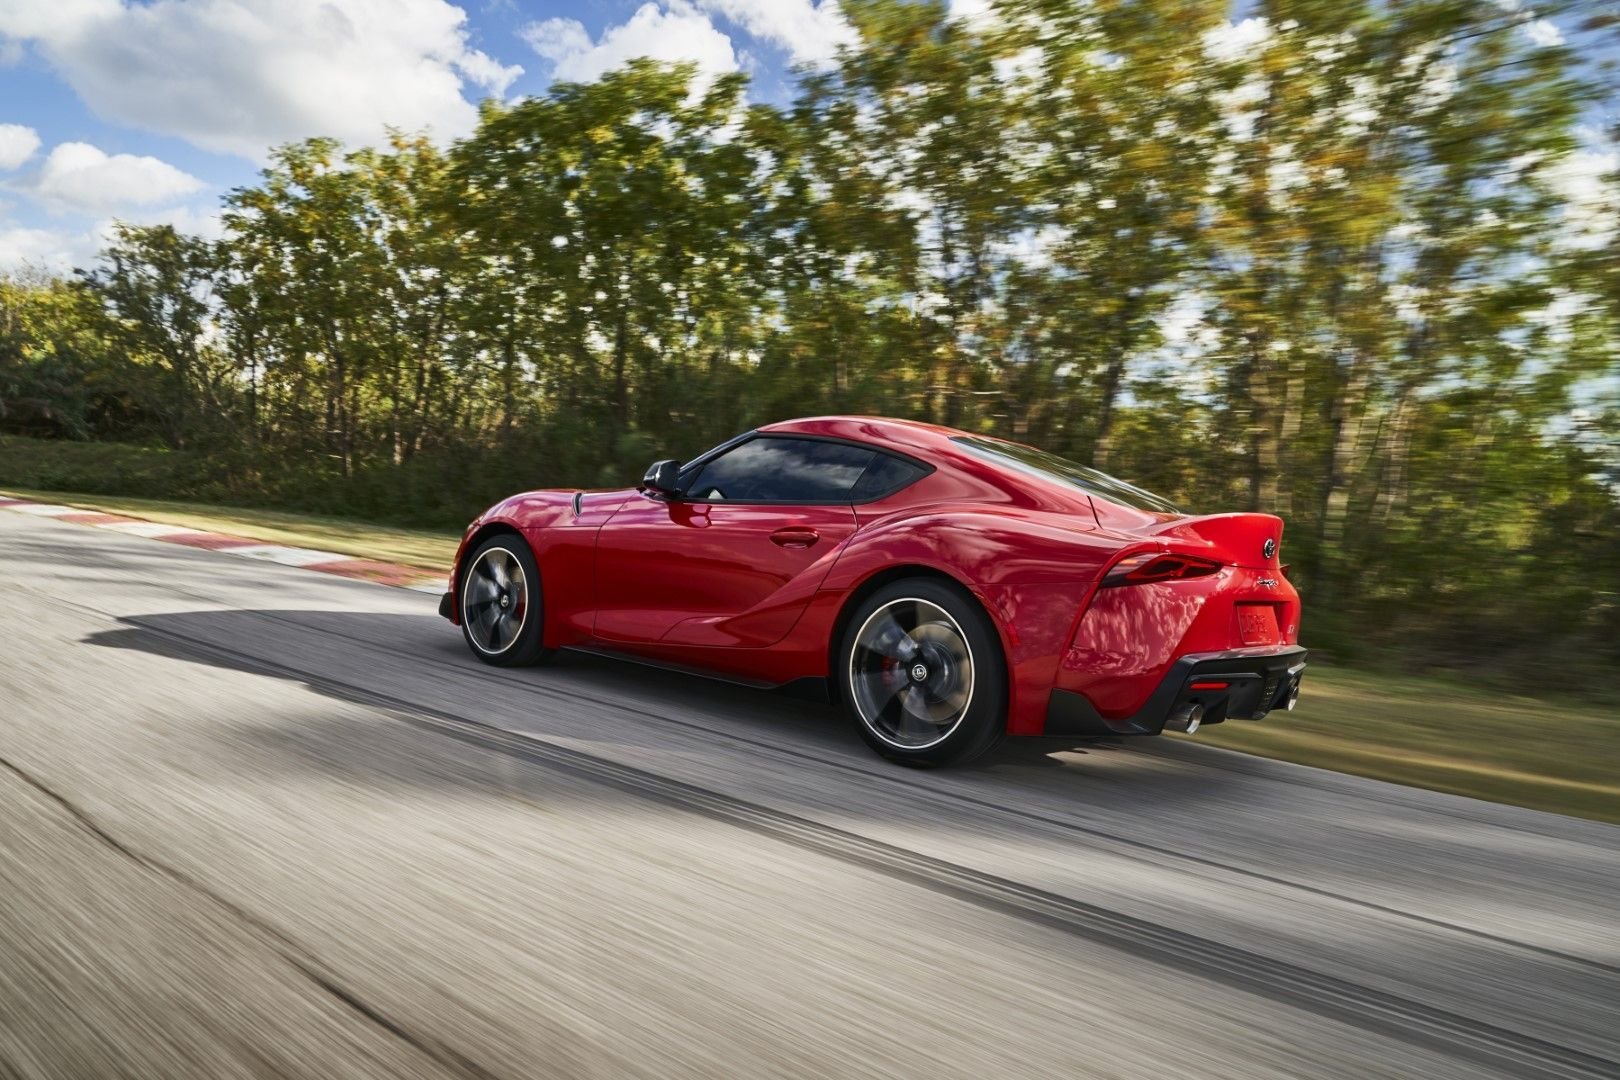 2020 Toyota Supra North American Model 3 0 Liter Turbocharged Inline Six With 335 Hp And 365 Lb Ft Of Torque Toyota Supra Toyota Toyota 2000gt